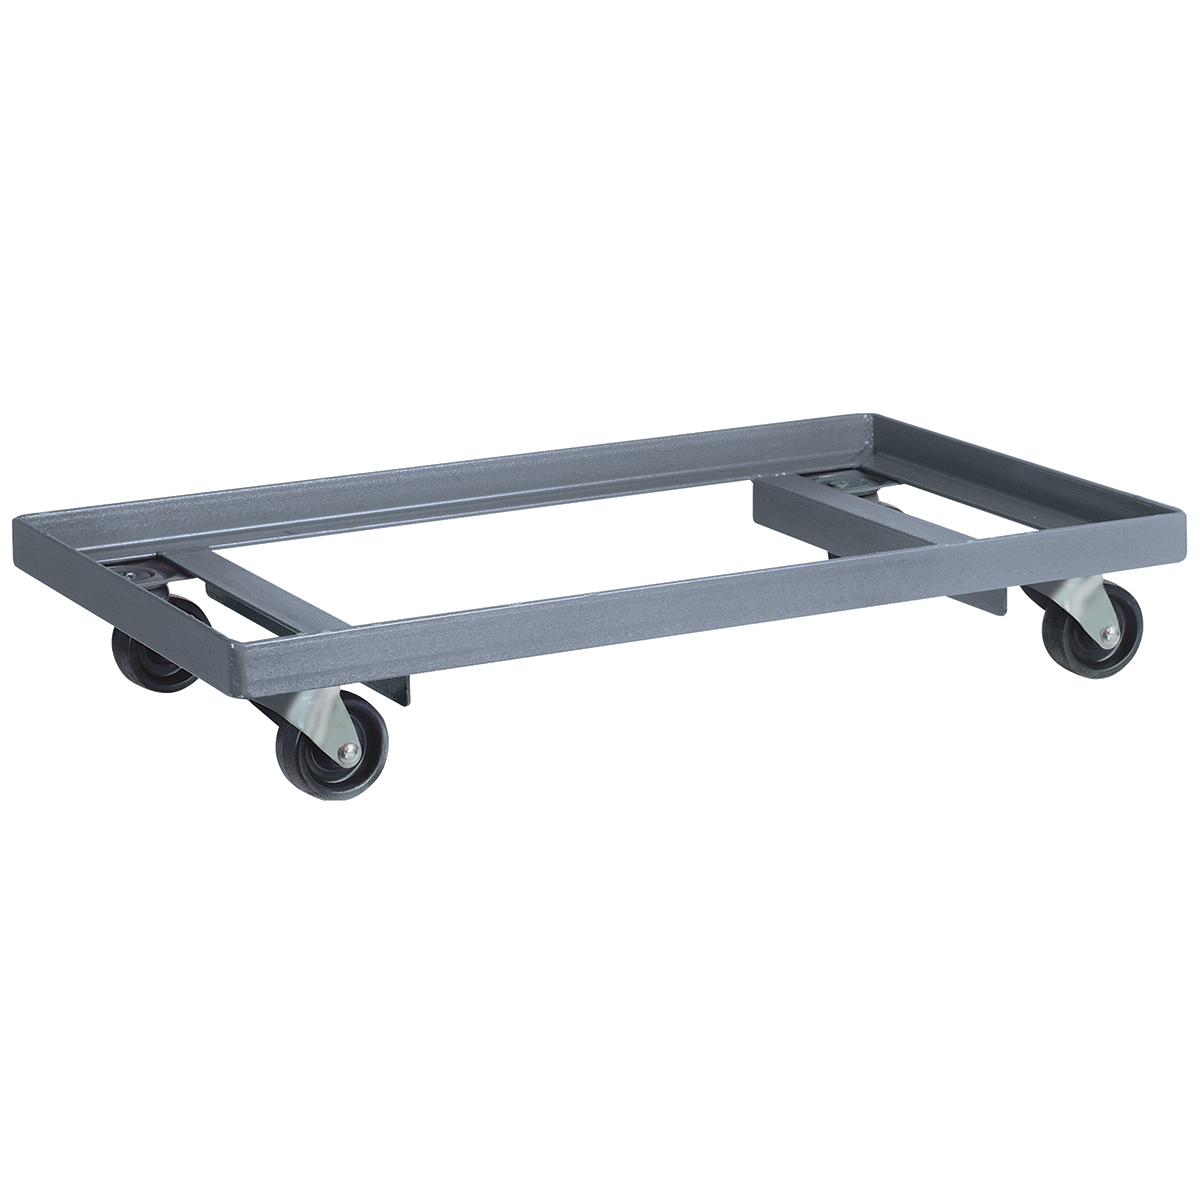 Item DISCONTINUED by Manufacturer.  Steel Dolly, 18x30, N/A3